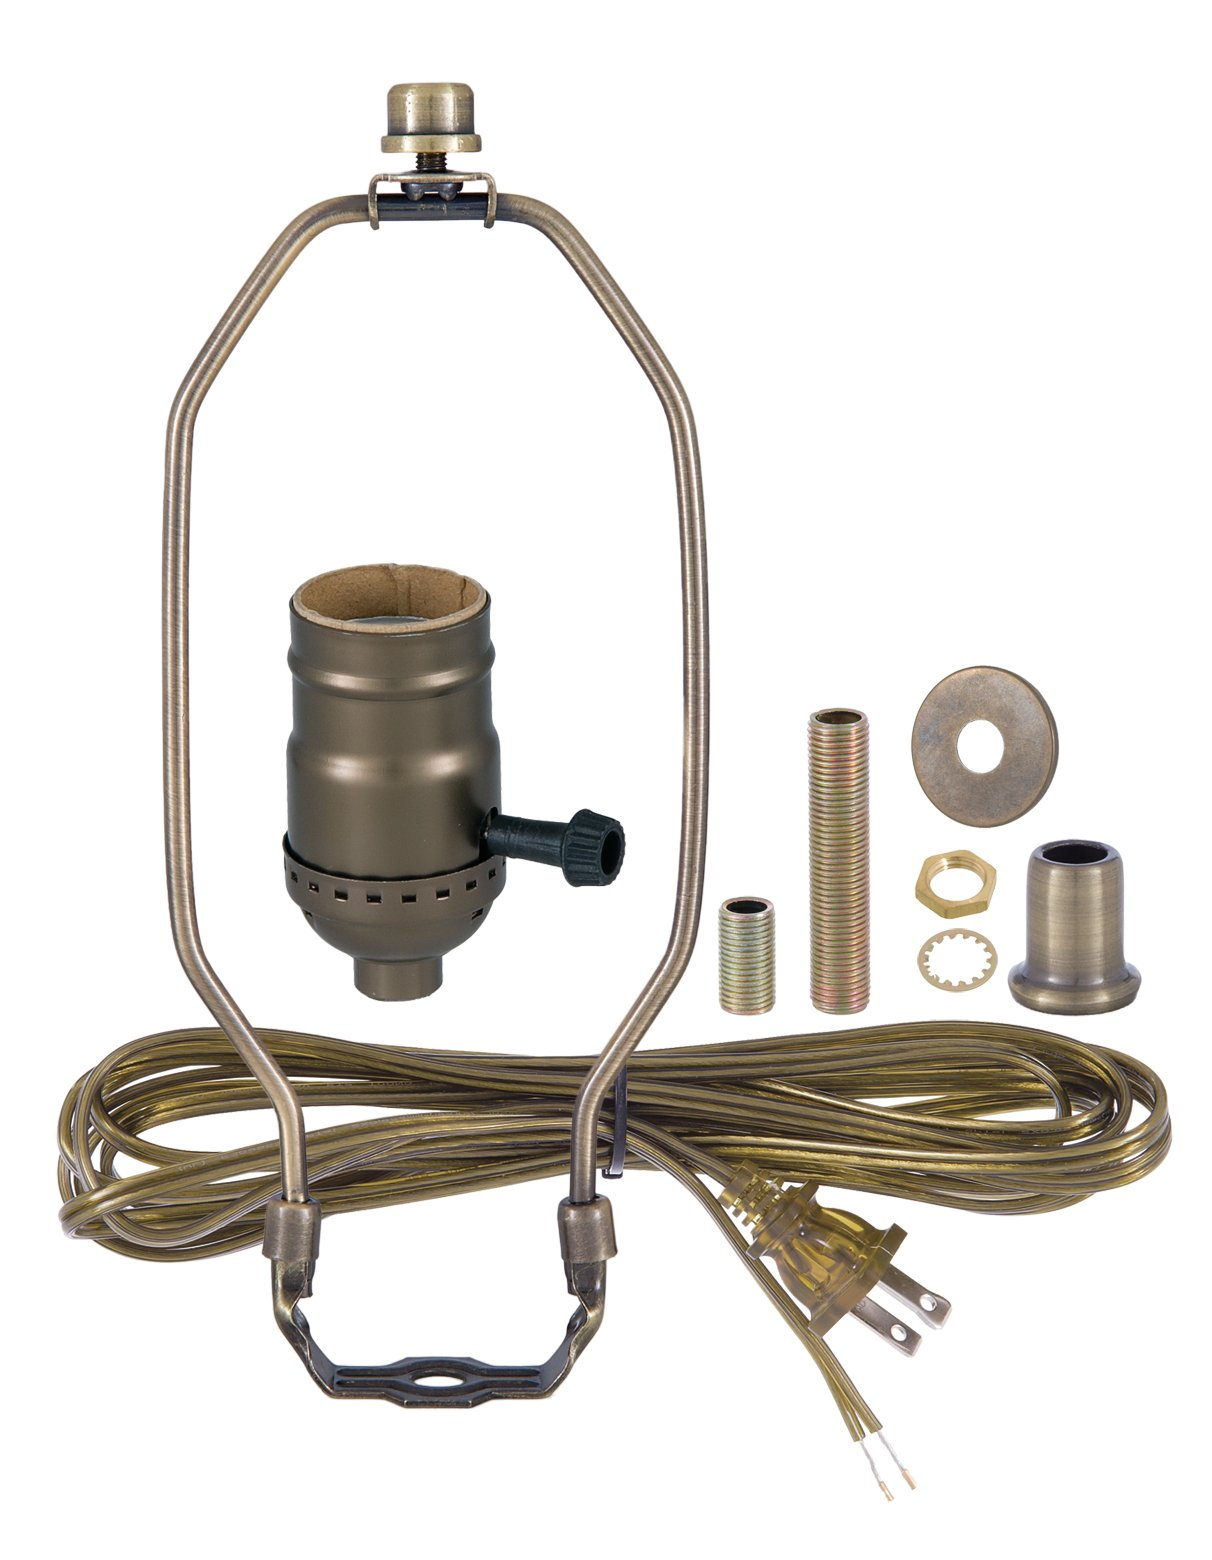 B&P Lamp Antique Brass Finish Table Lamp Wiring Kit With 8 Inch Harp, 3-Way Socket